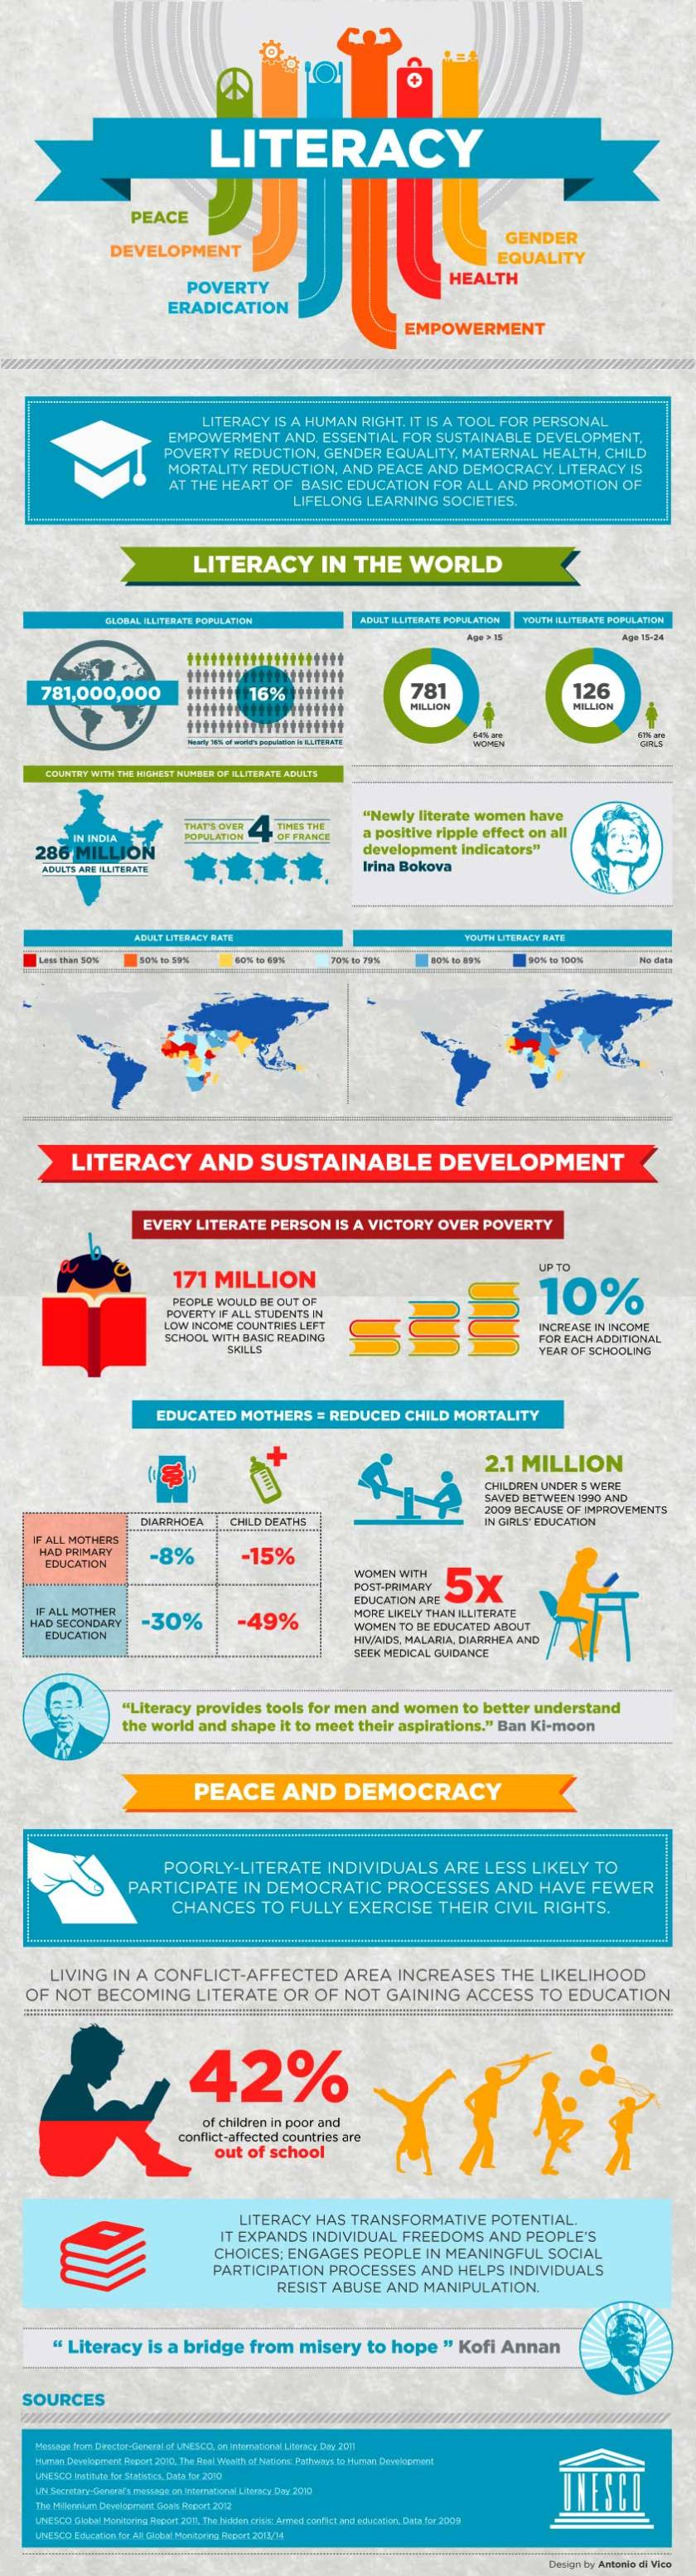 literacy-world